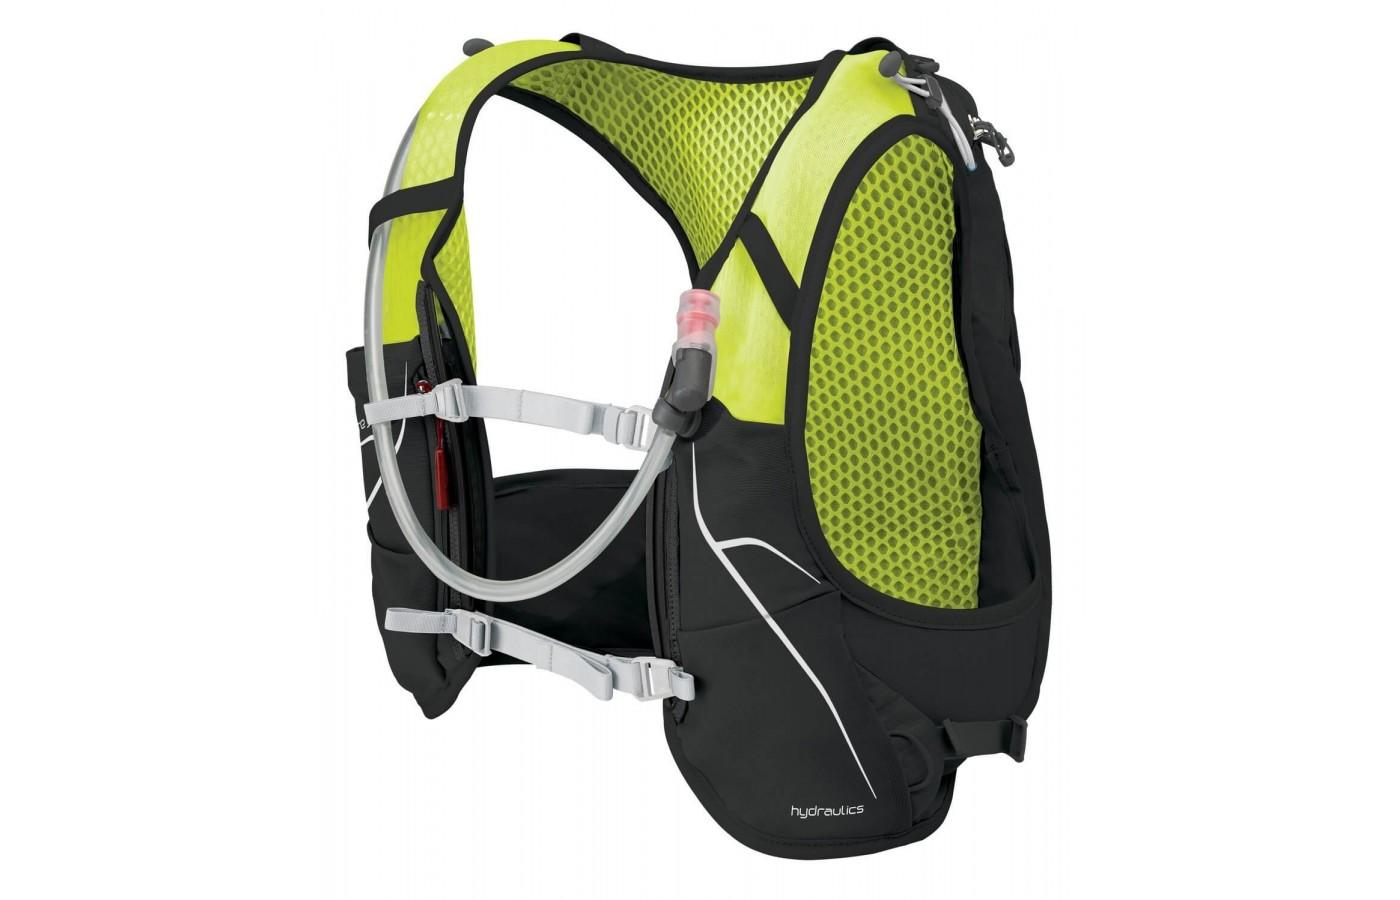 This vest comes with a 1.5 liter hydration reservoir.